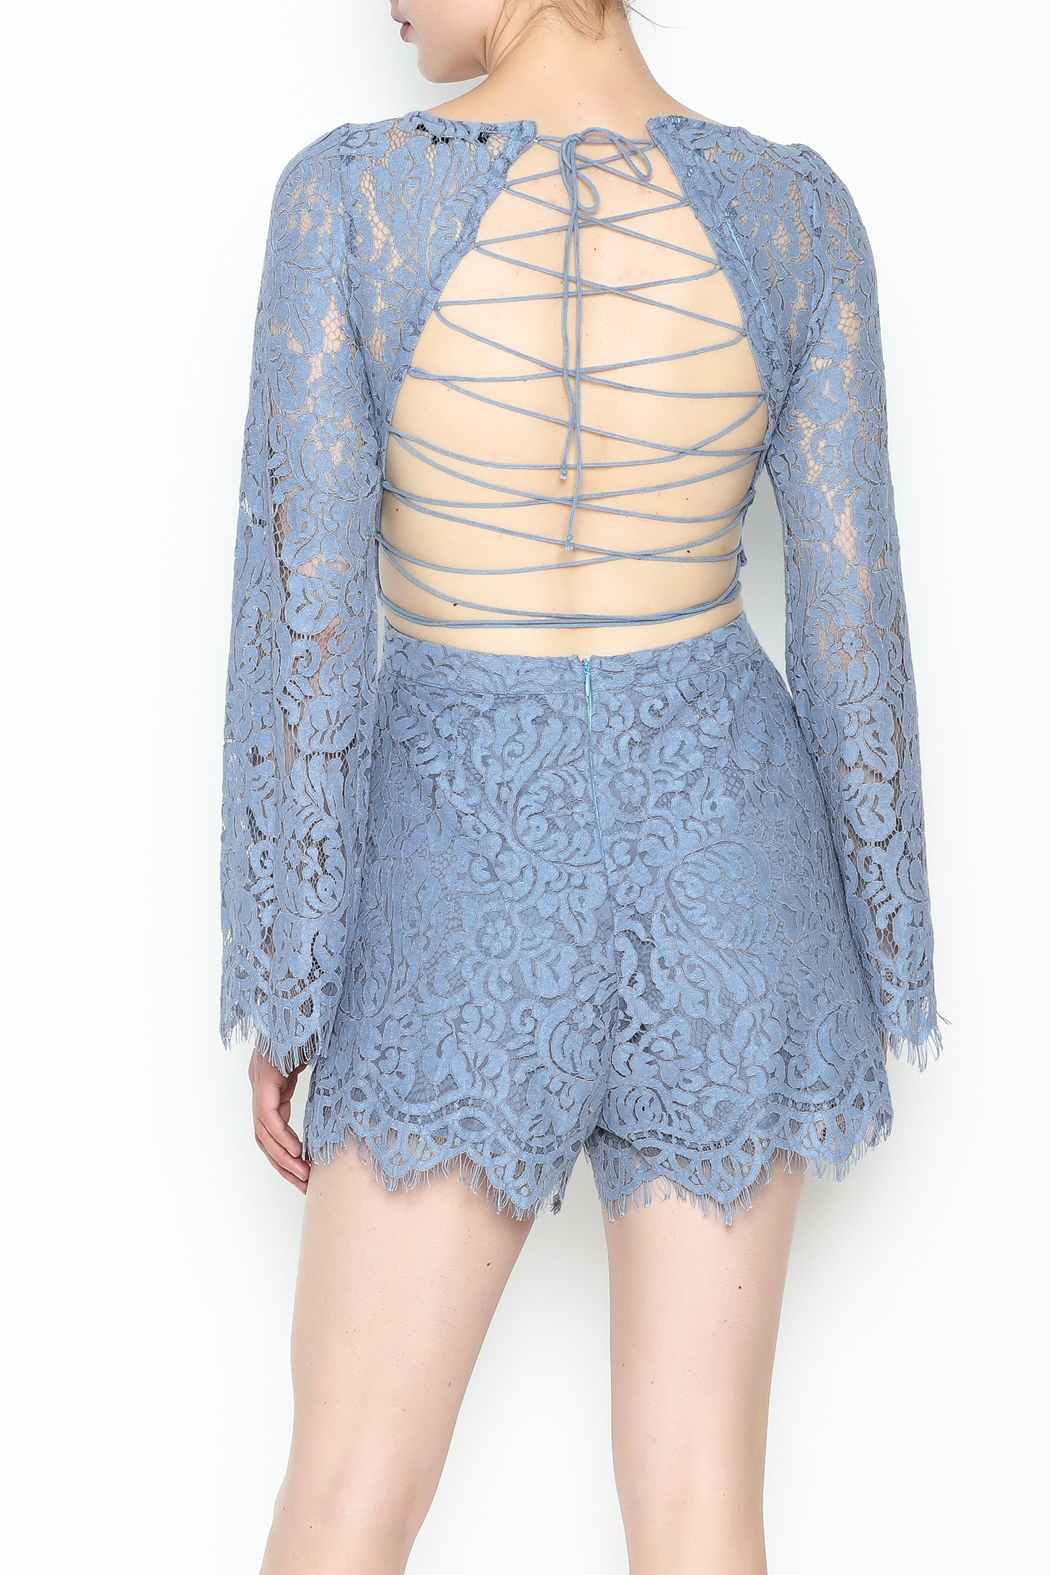 Surf Gypsy Romatic Lace Romper - Back Cropped Image